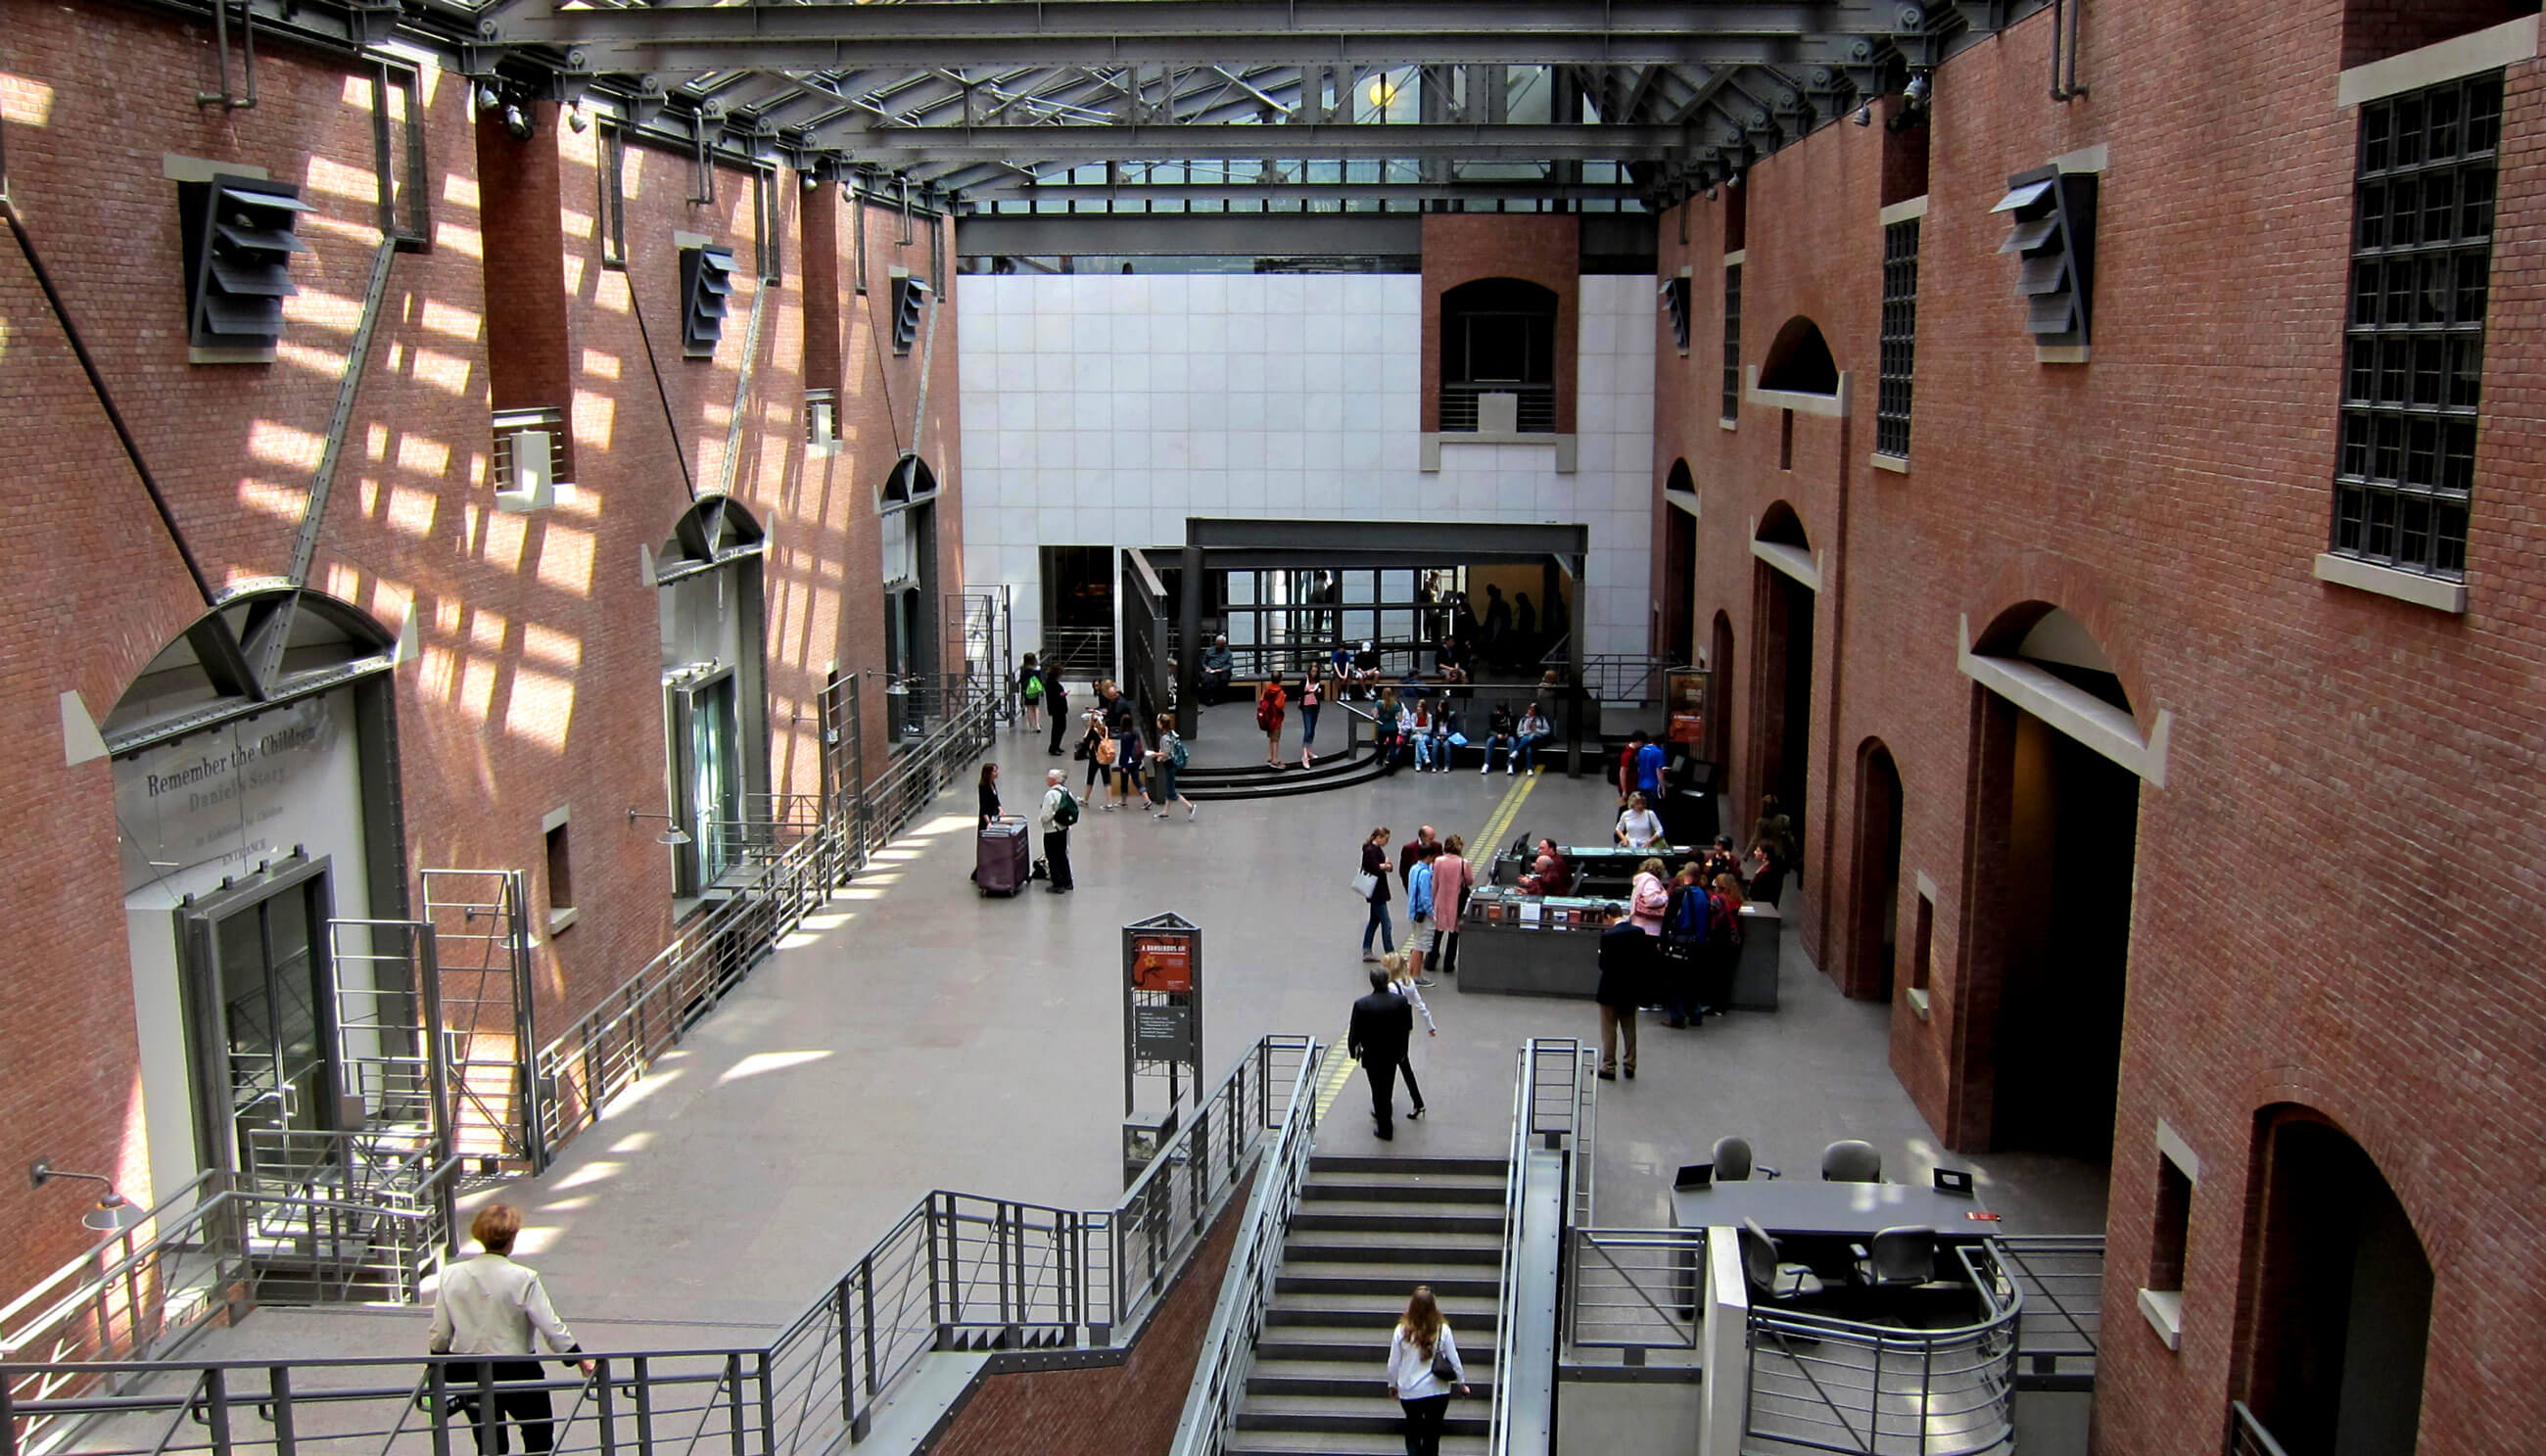 United States Holocaust Memorial Museum entrance atrium, composed of a steel and glass roof flanked by two brick facades with irregular openings.